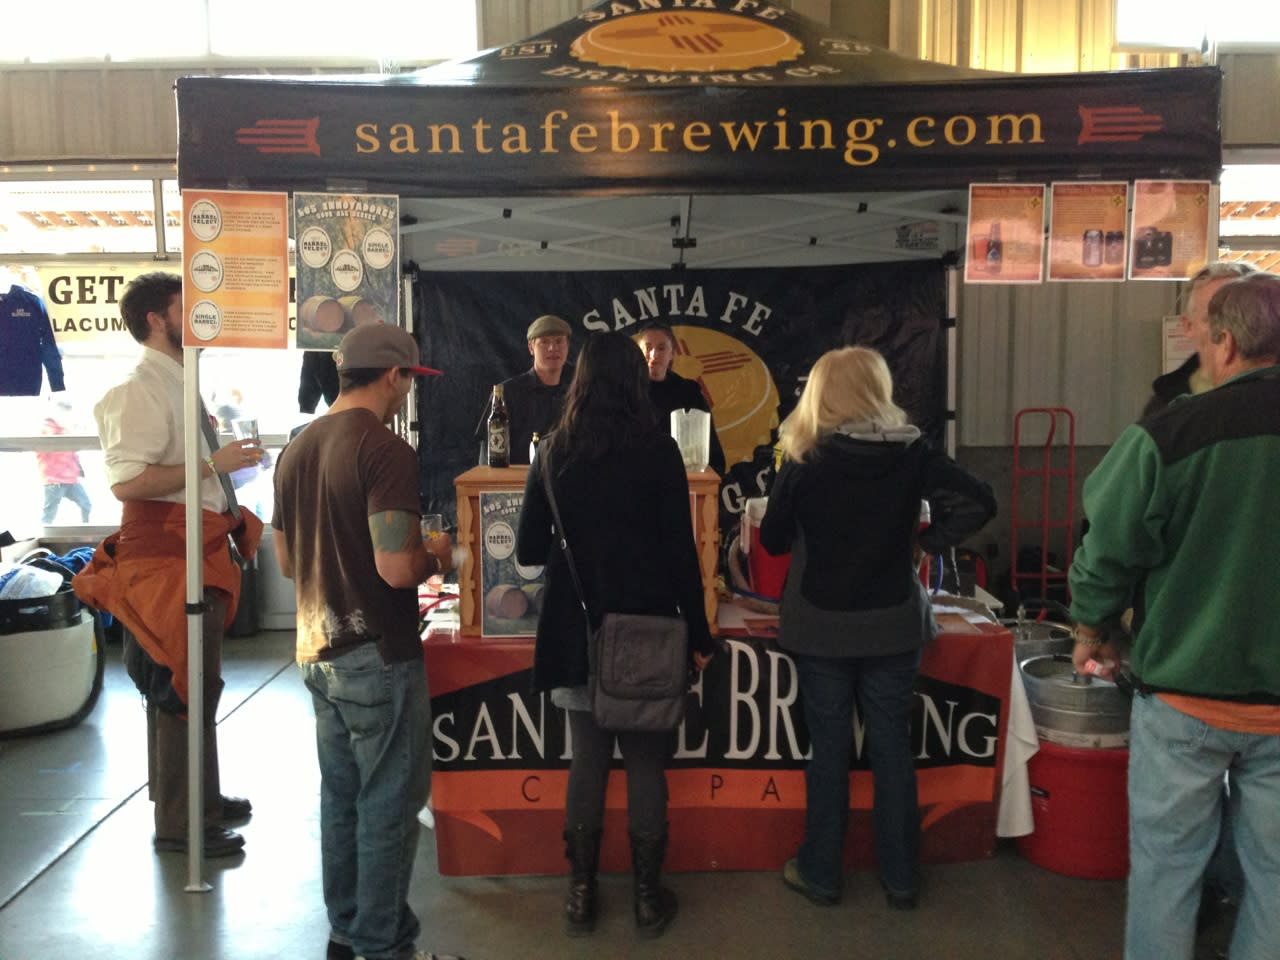 The brew will be fizzing up fresh from Santa Fe Brewing Company at WinterBrew 2014.